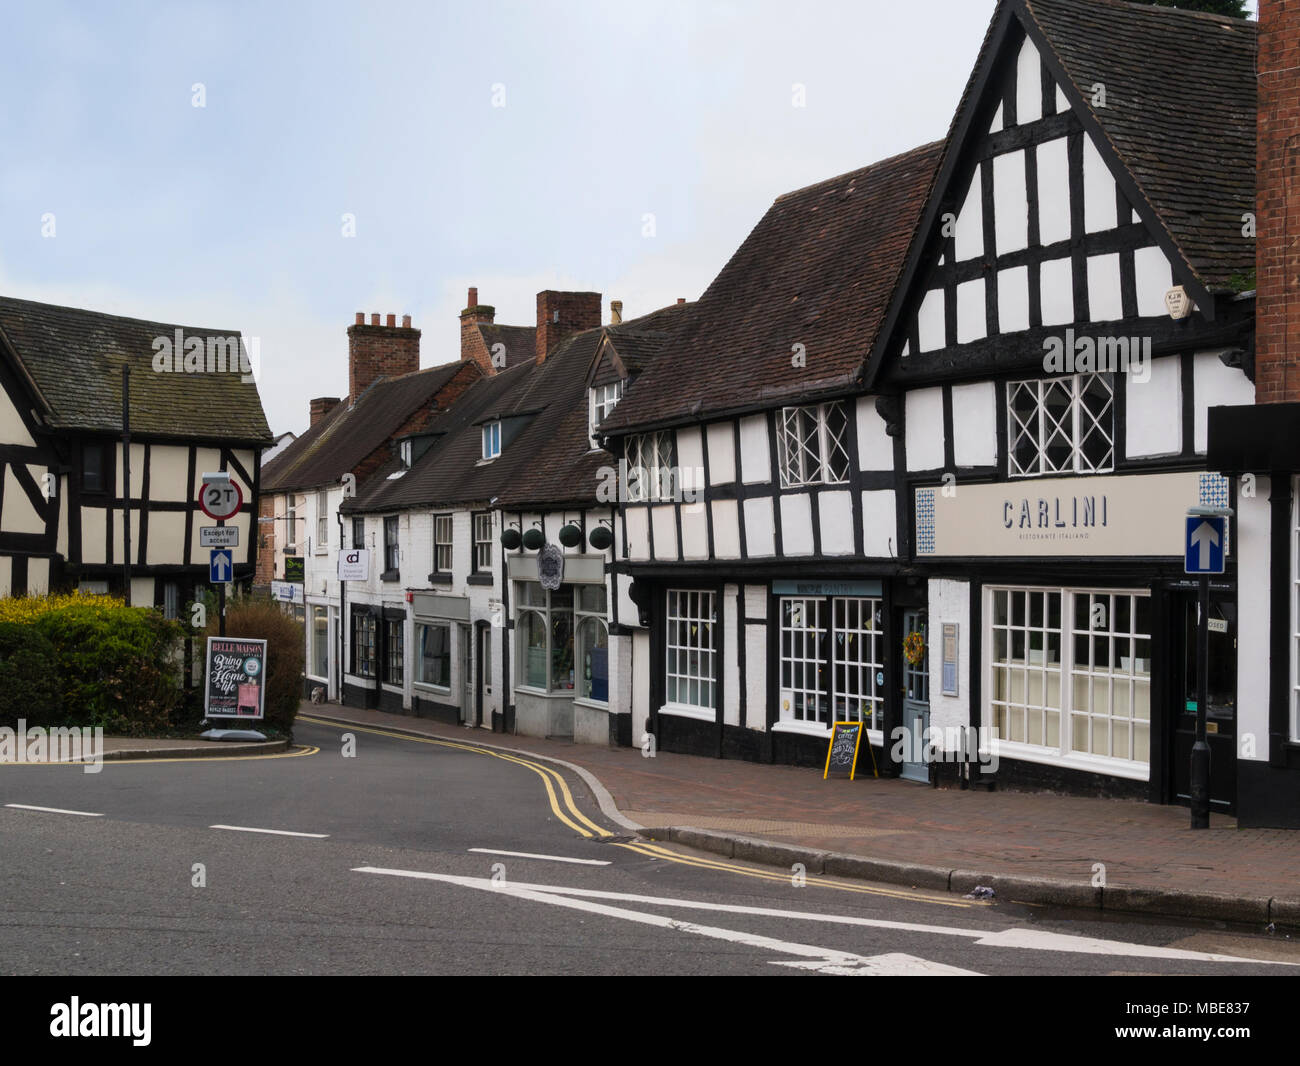 Medieval properties containing independent businesses in Church Street small historic market town Shifnal Shropshire England UK - Stock Image